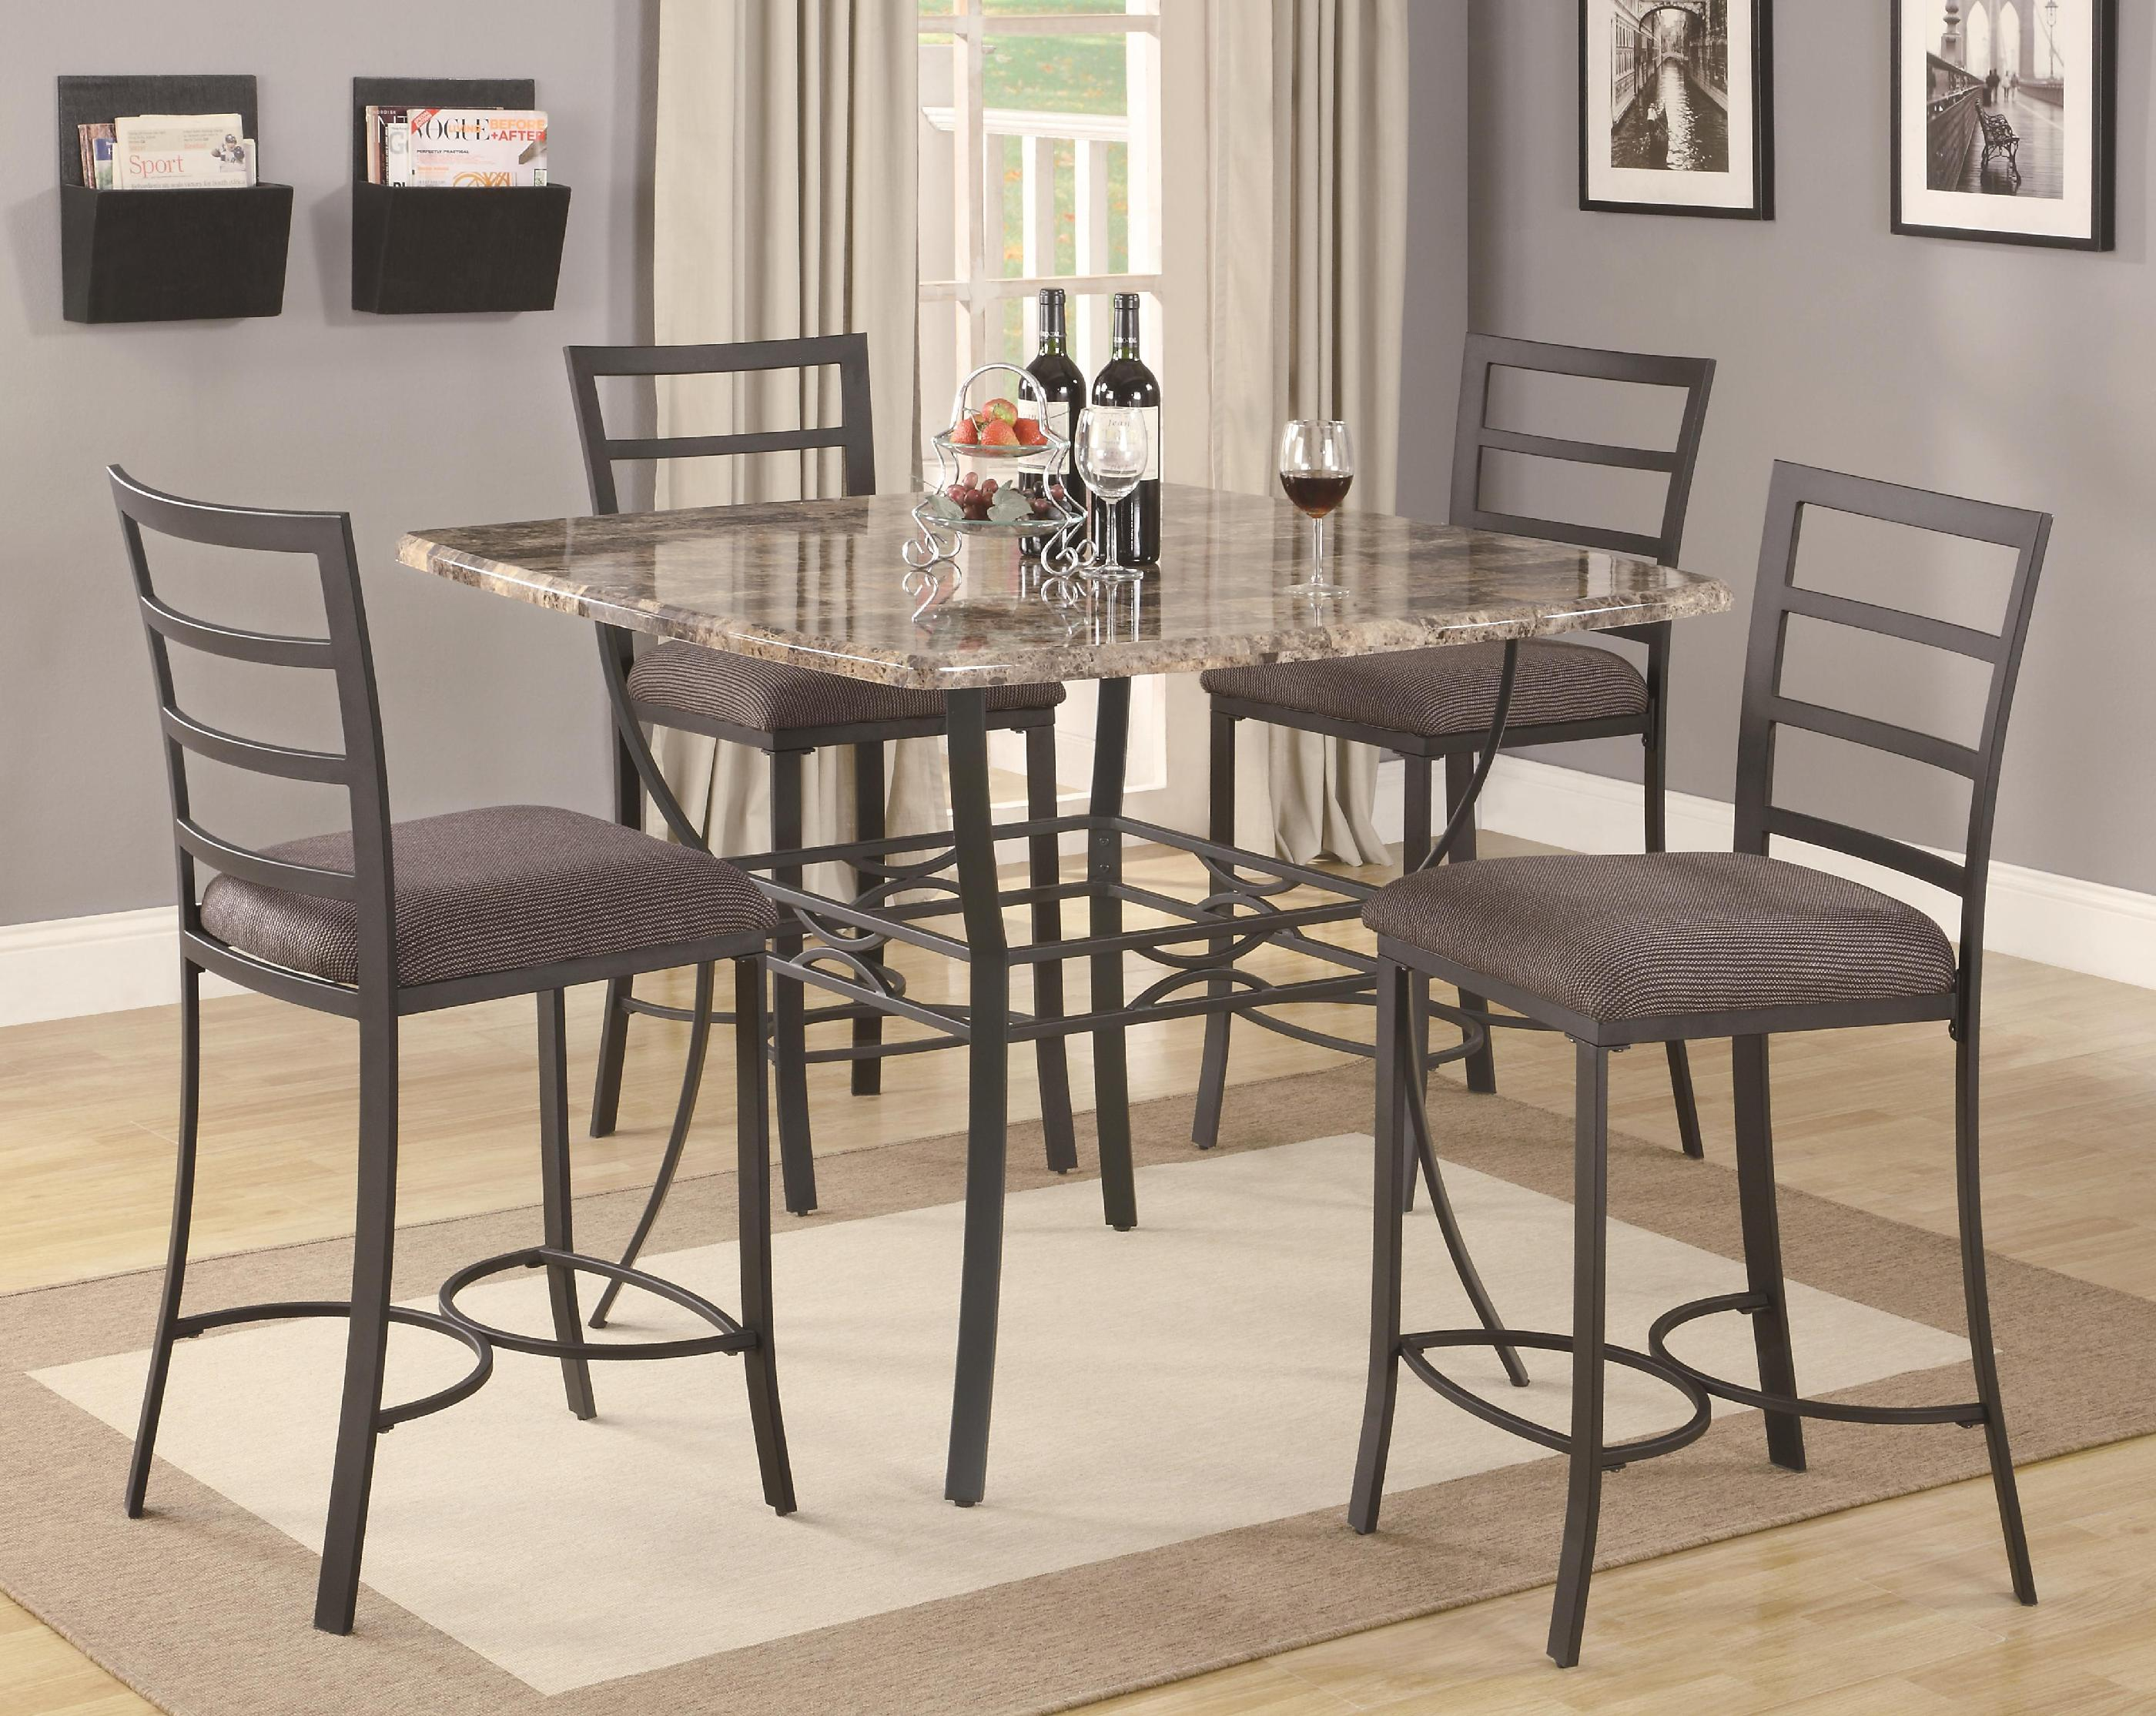 Image of: Tall Bistro Table